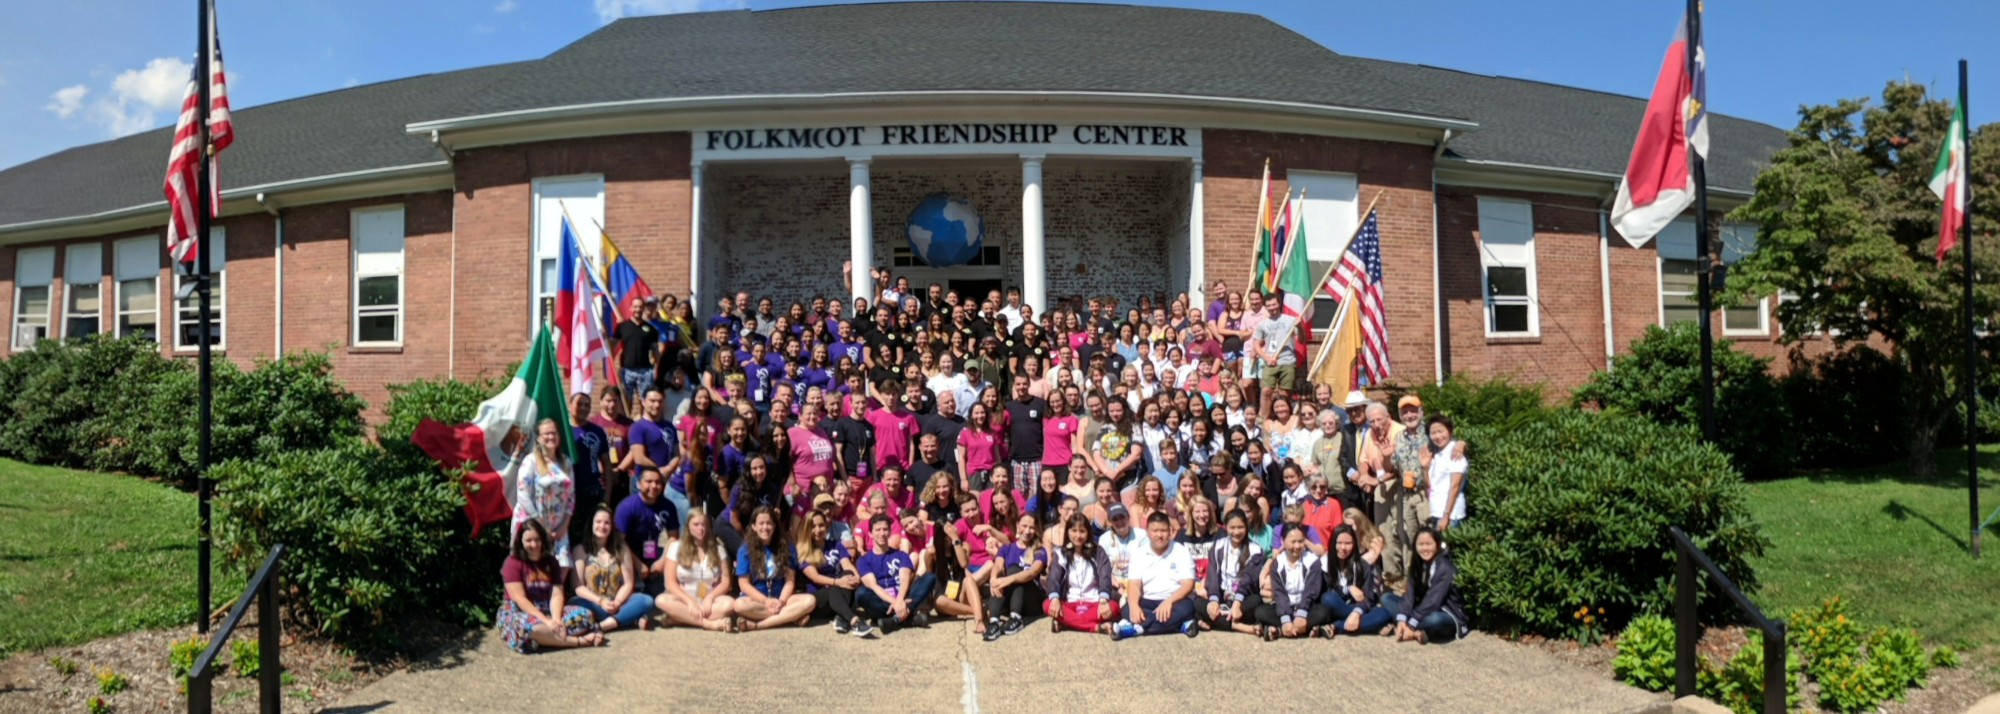 It's a concert hall, a commercial kitchen and cafeteria, a dormitory, an event space - it's the Folkmoot Center.